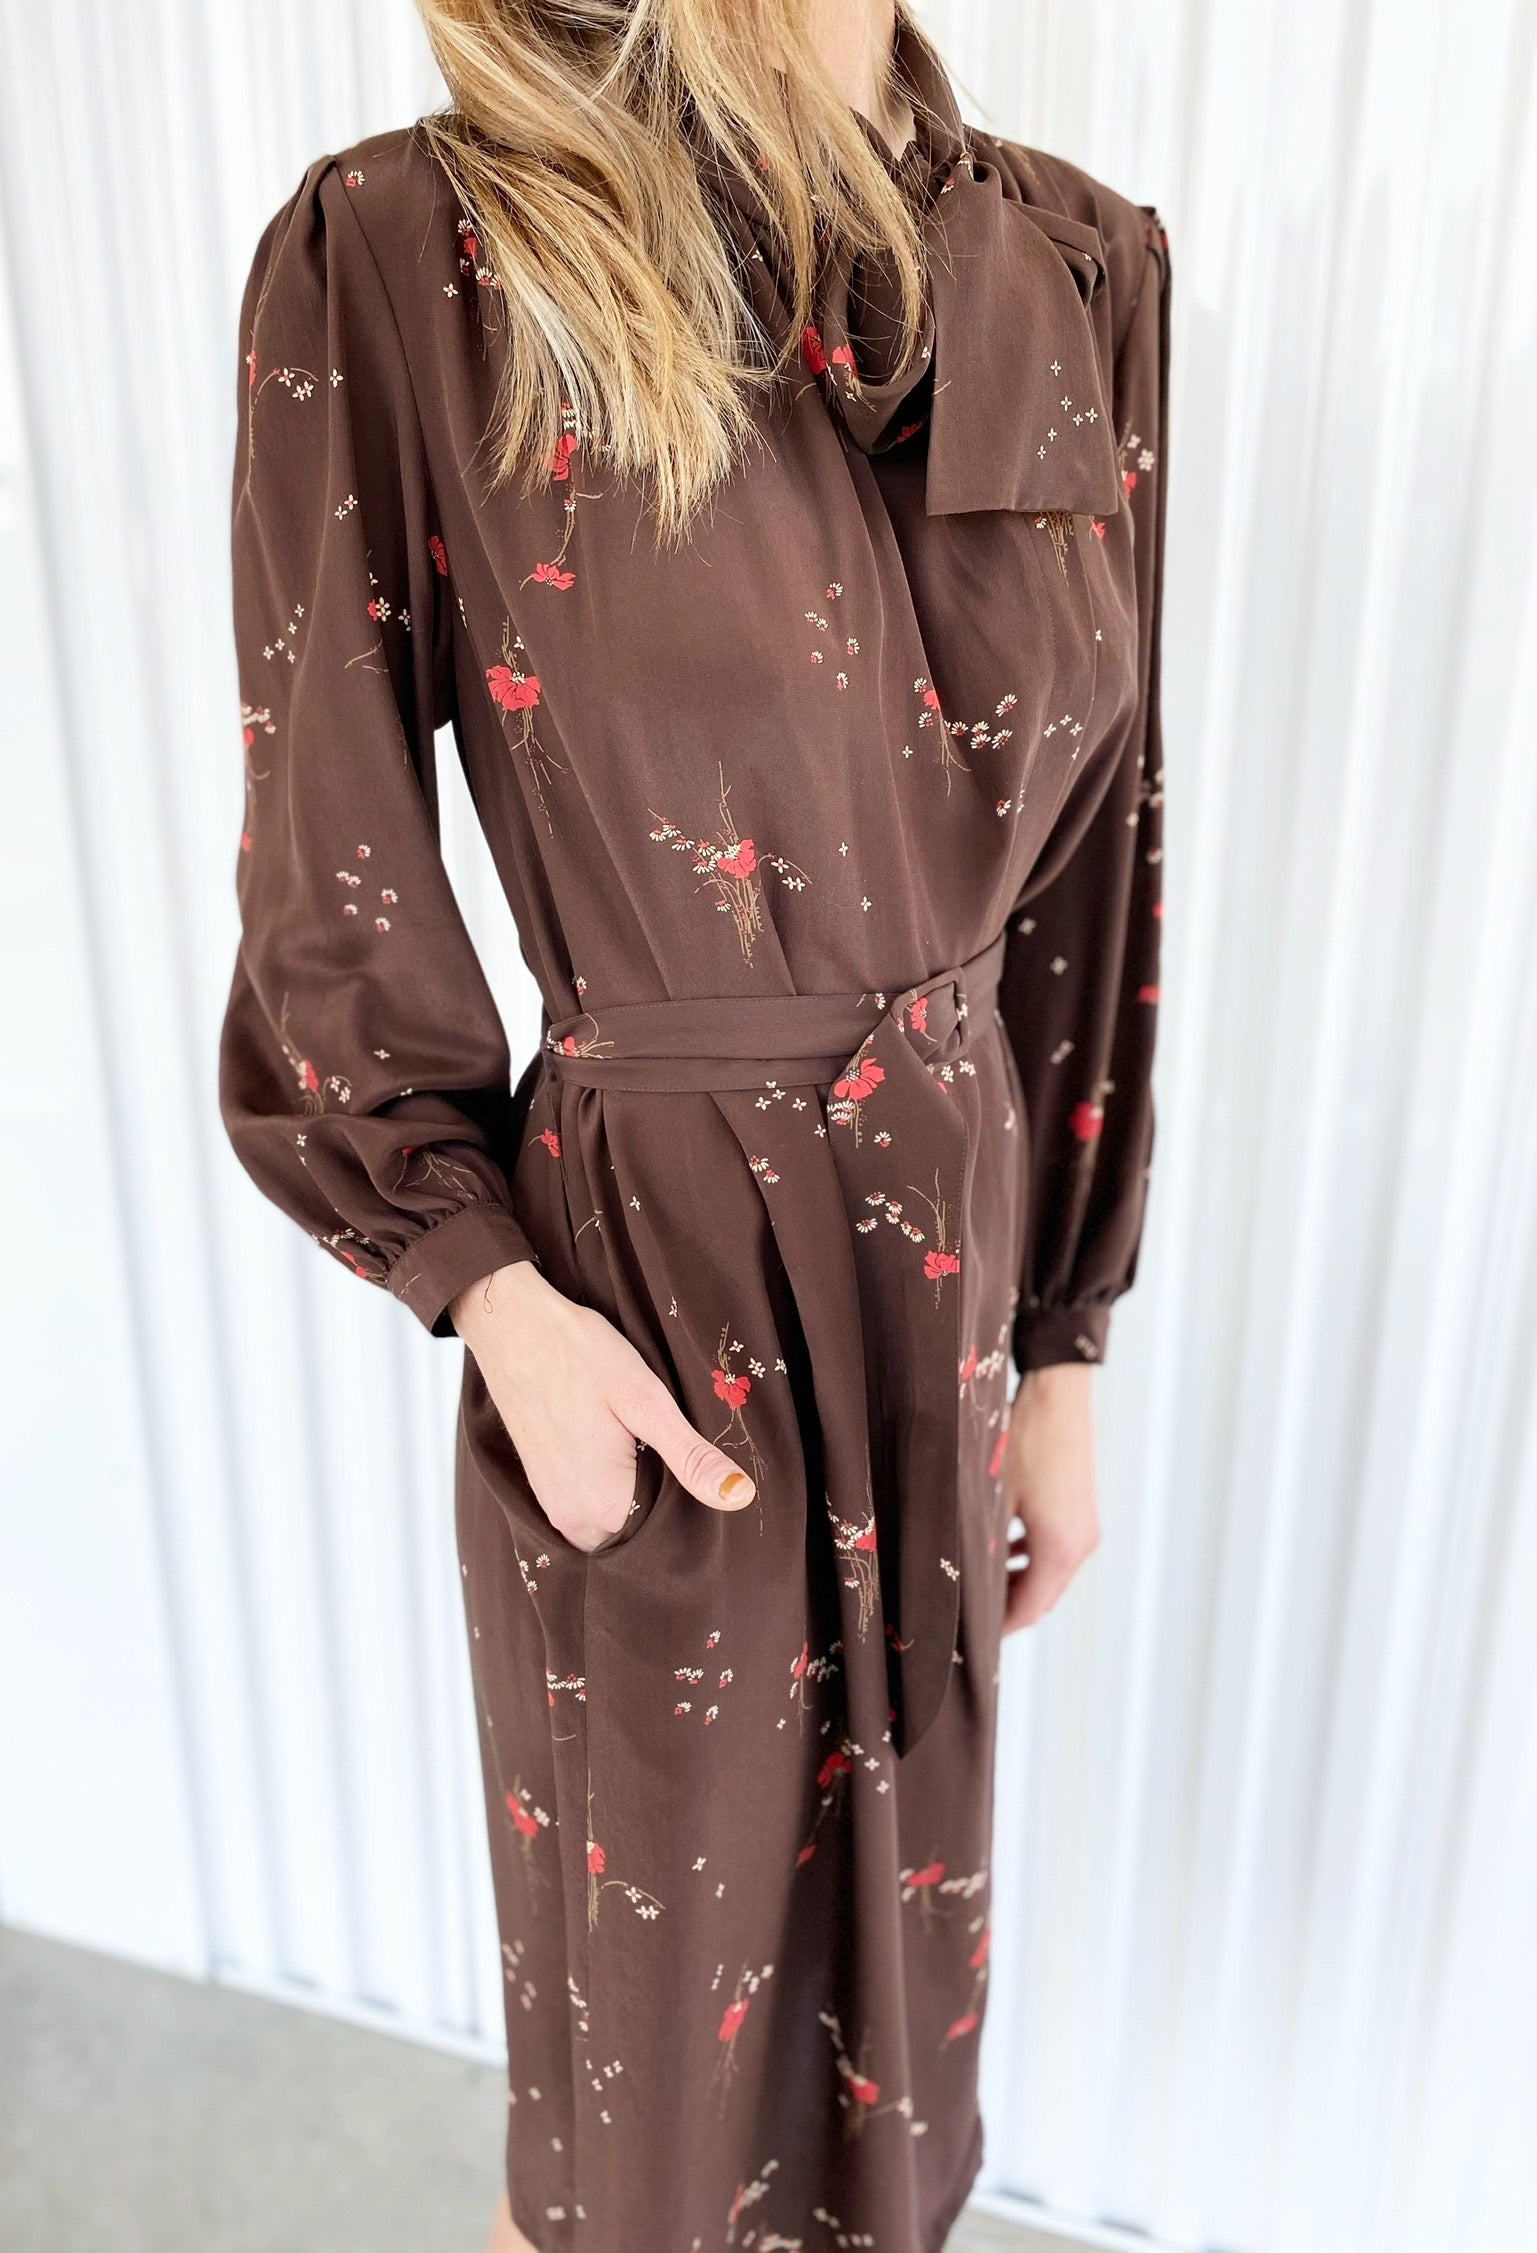 Silk Dress with Bow (16)